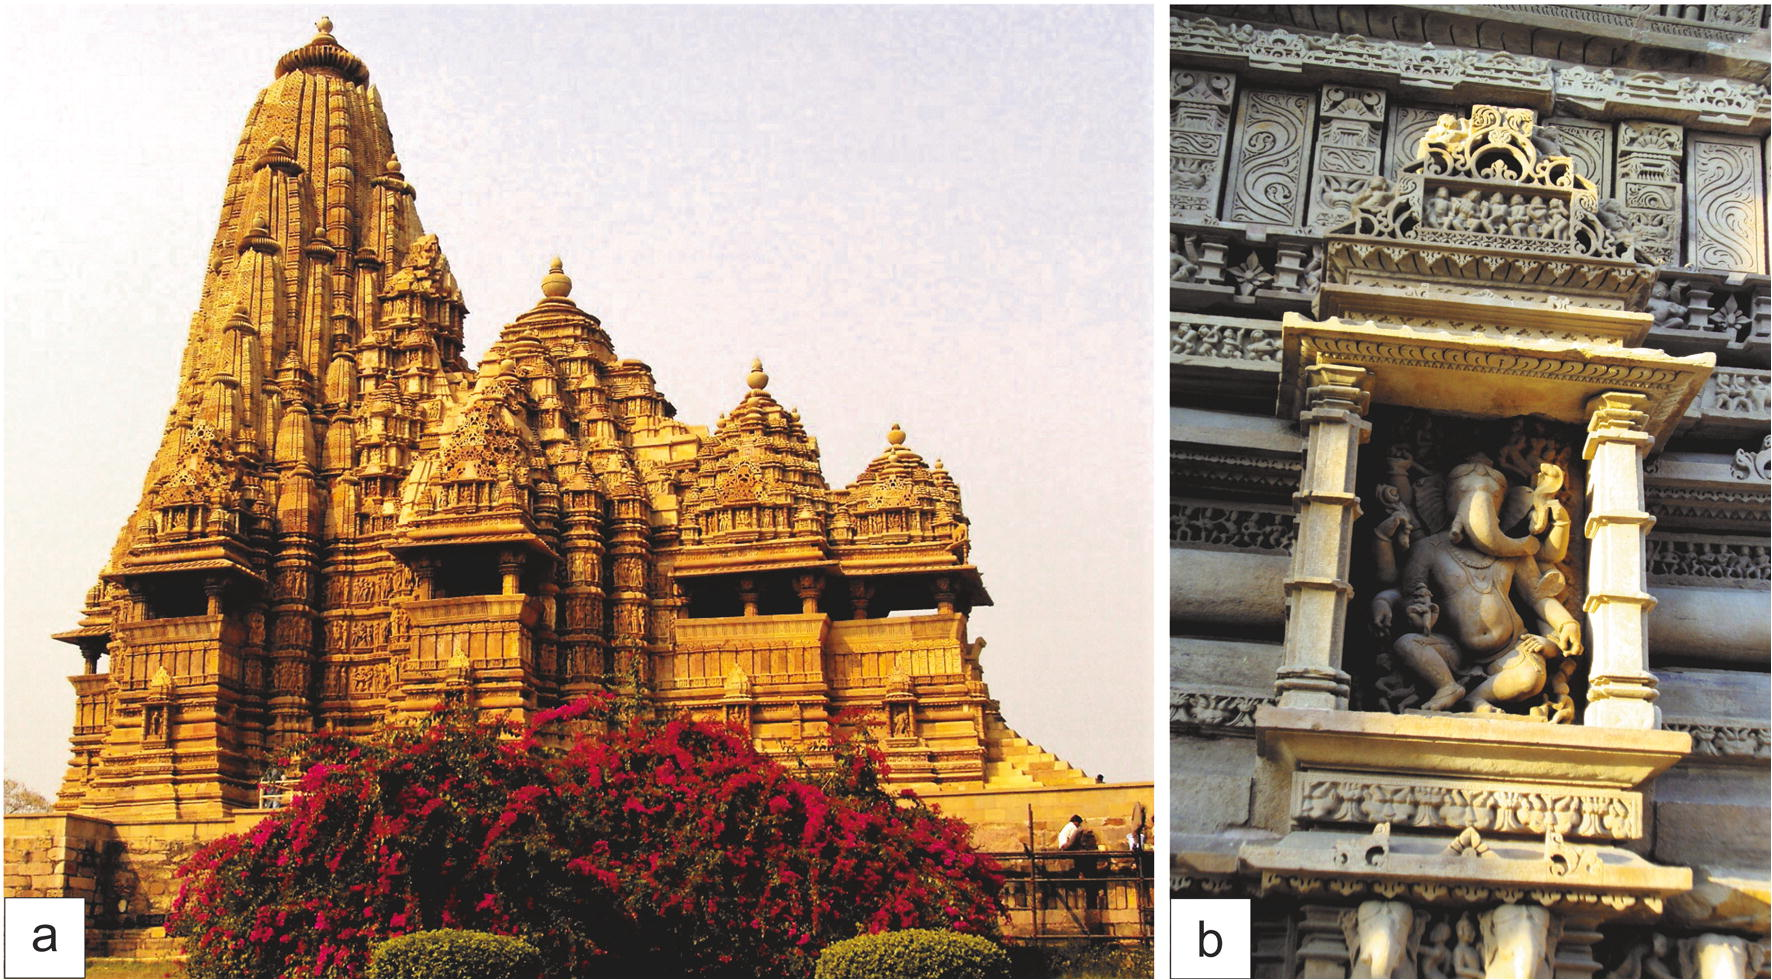 Vindhyan Sandstone: a Crowning Glory of Architectonic